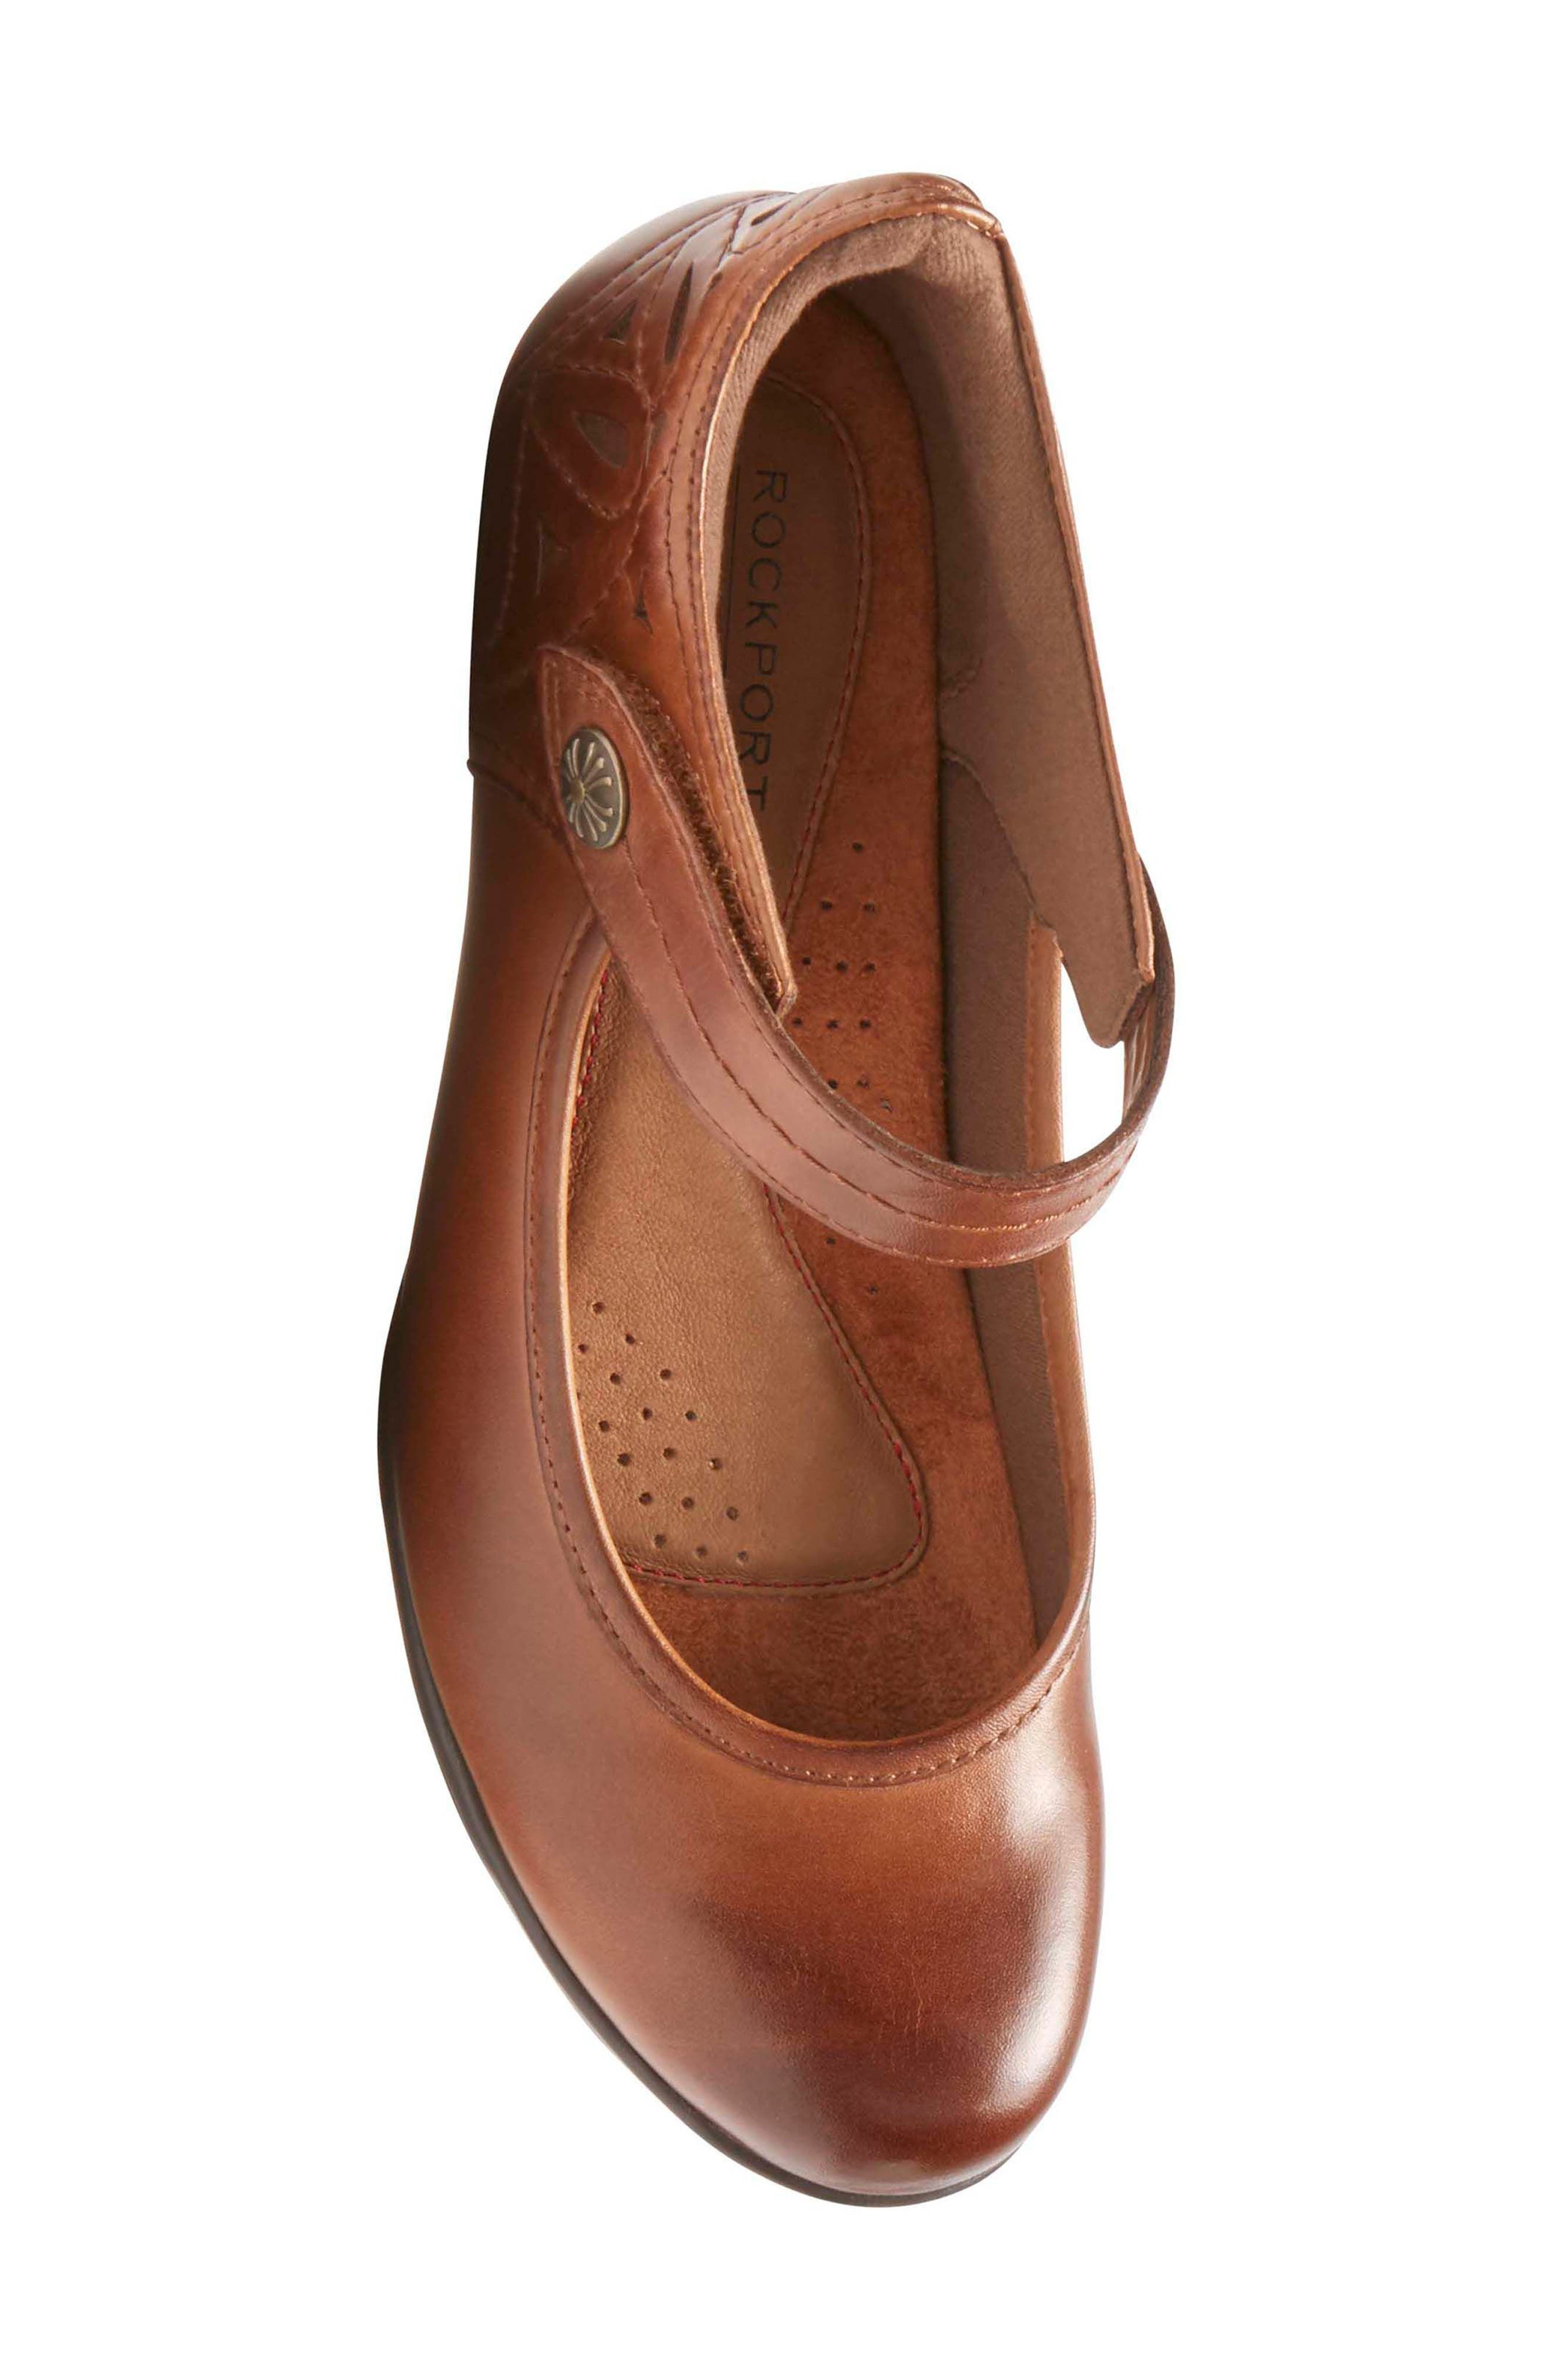 Abbott Mary Jane Pump,                             Alternate thumbnail 5, color,                             ALMOND LEATHER